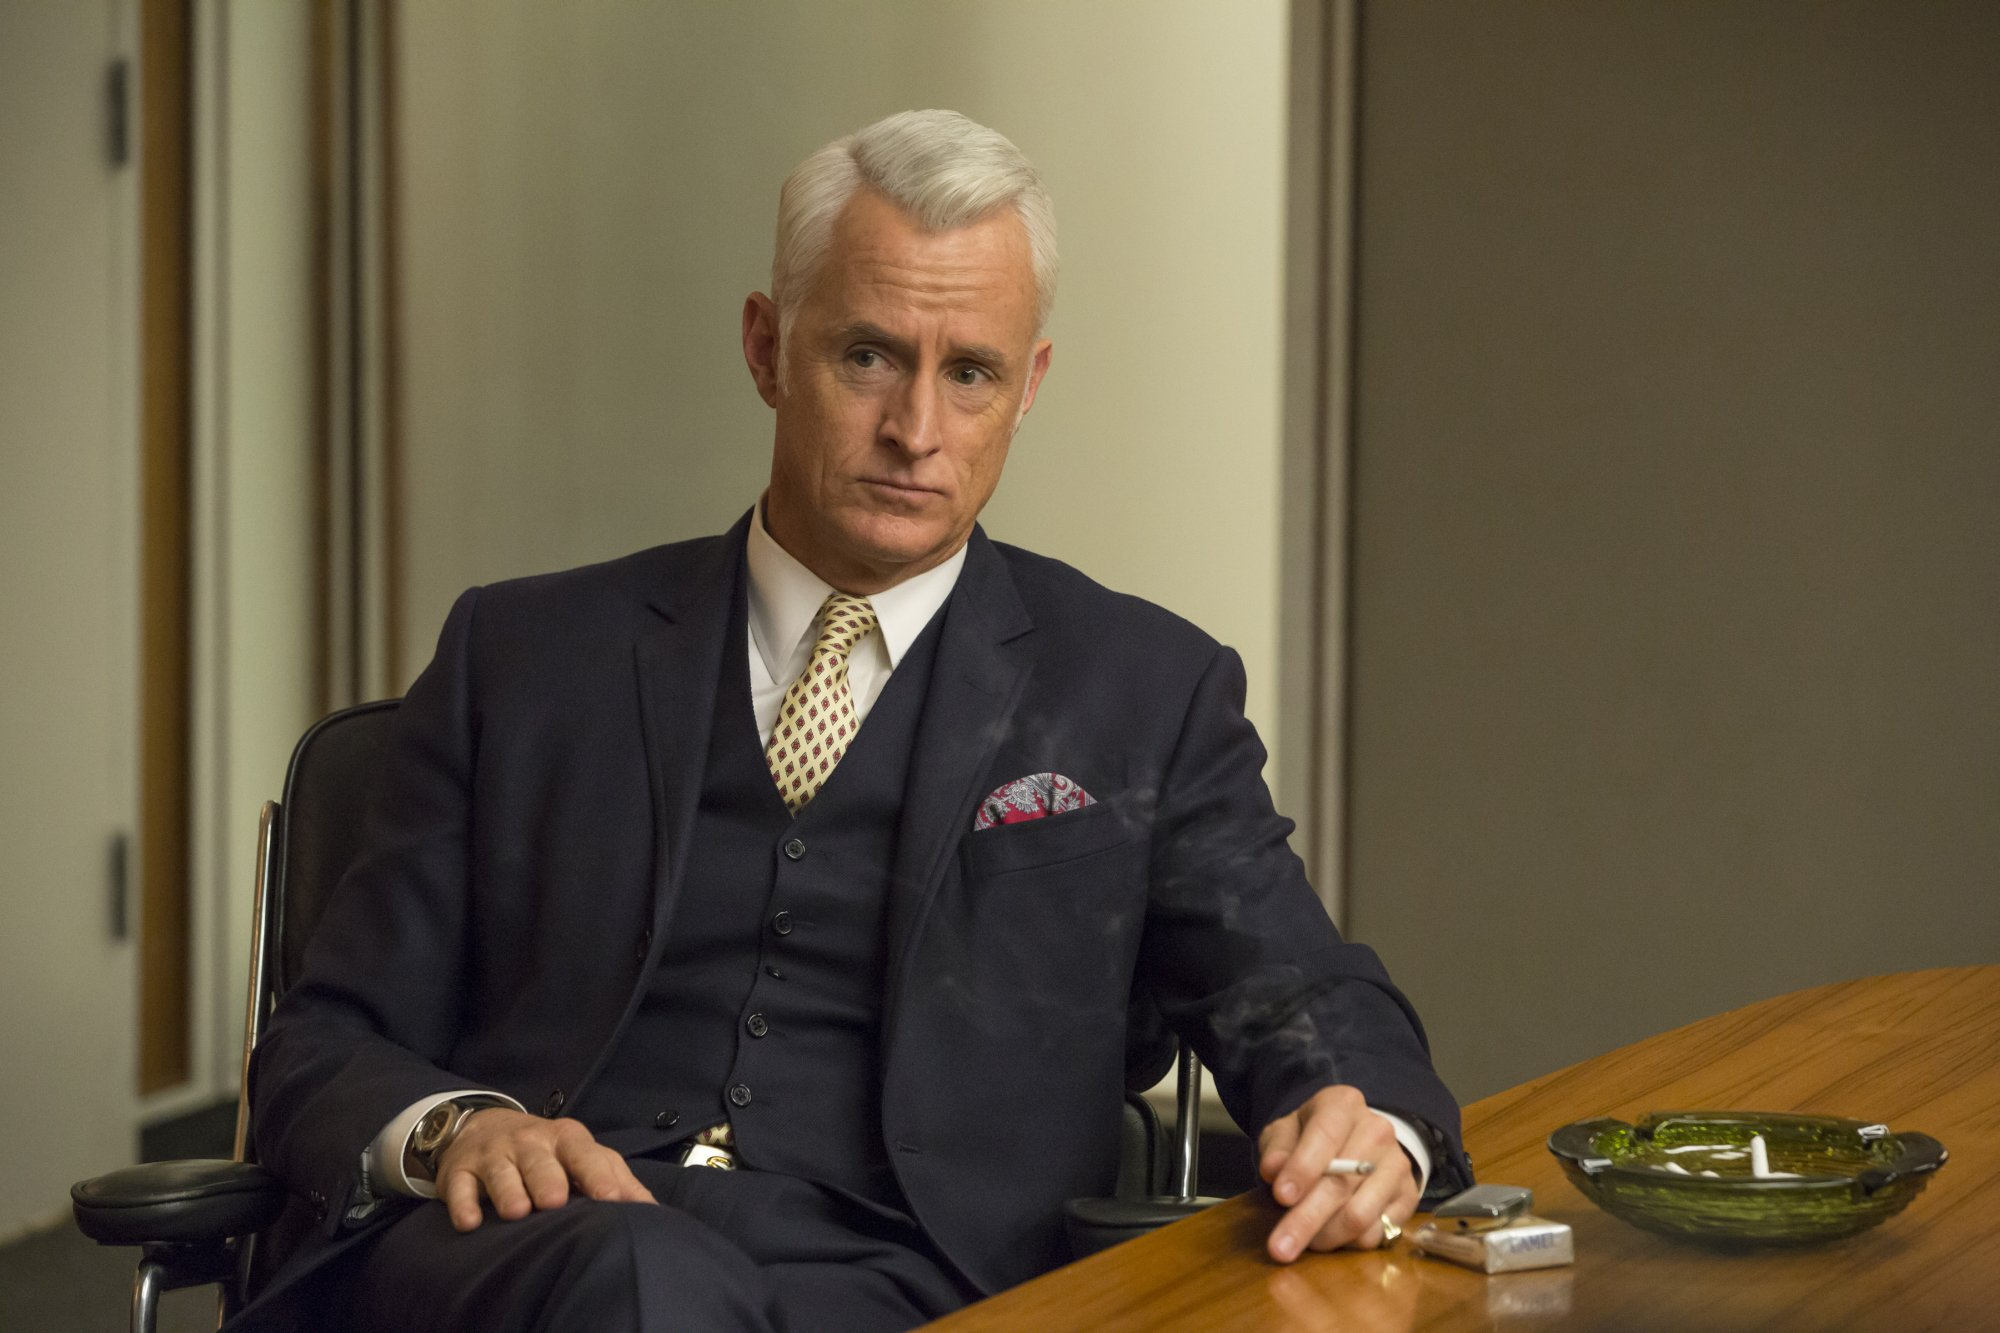 Mad Men - 07x03 - Field Trip 02